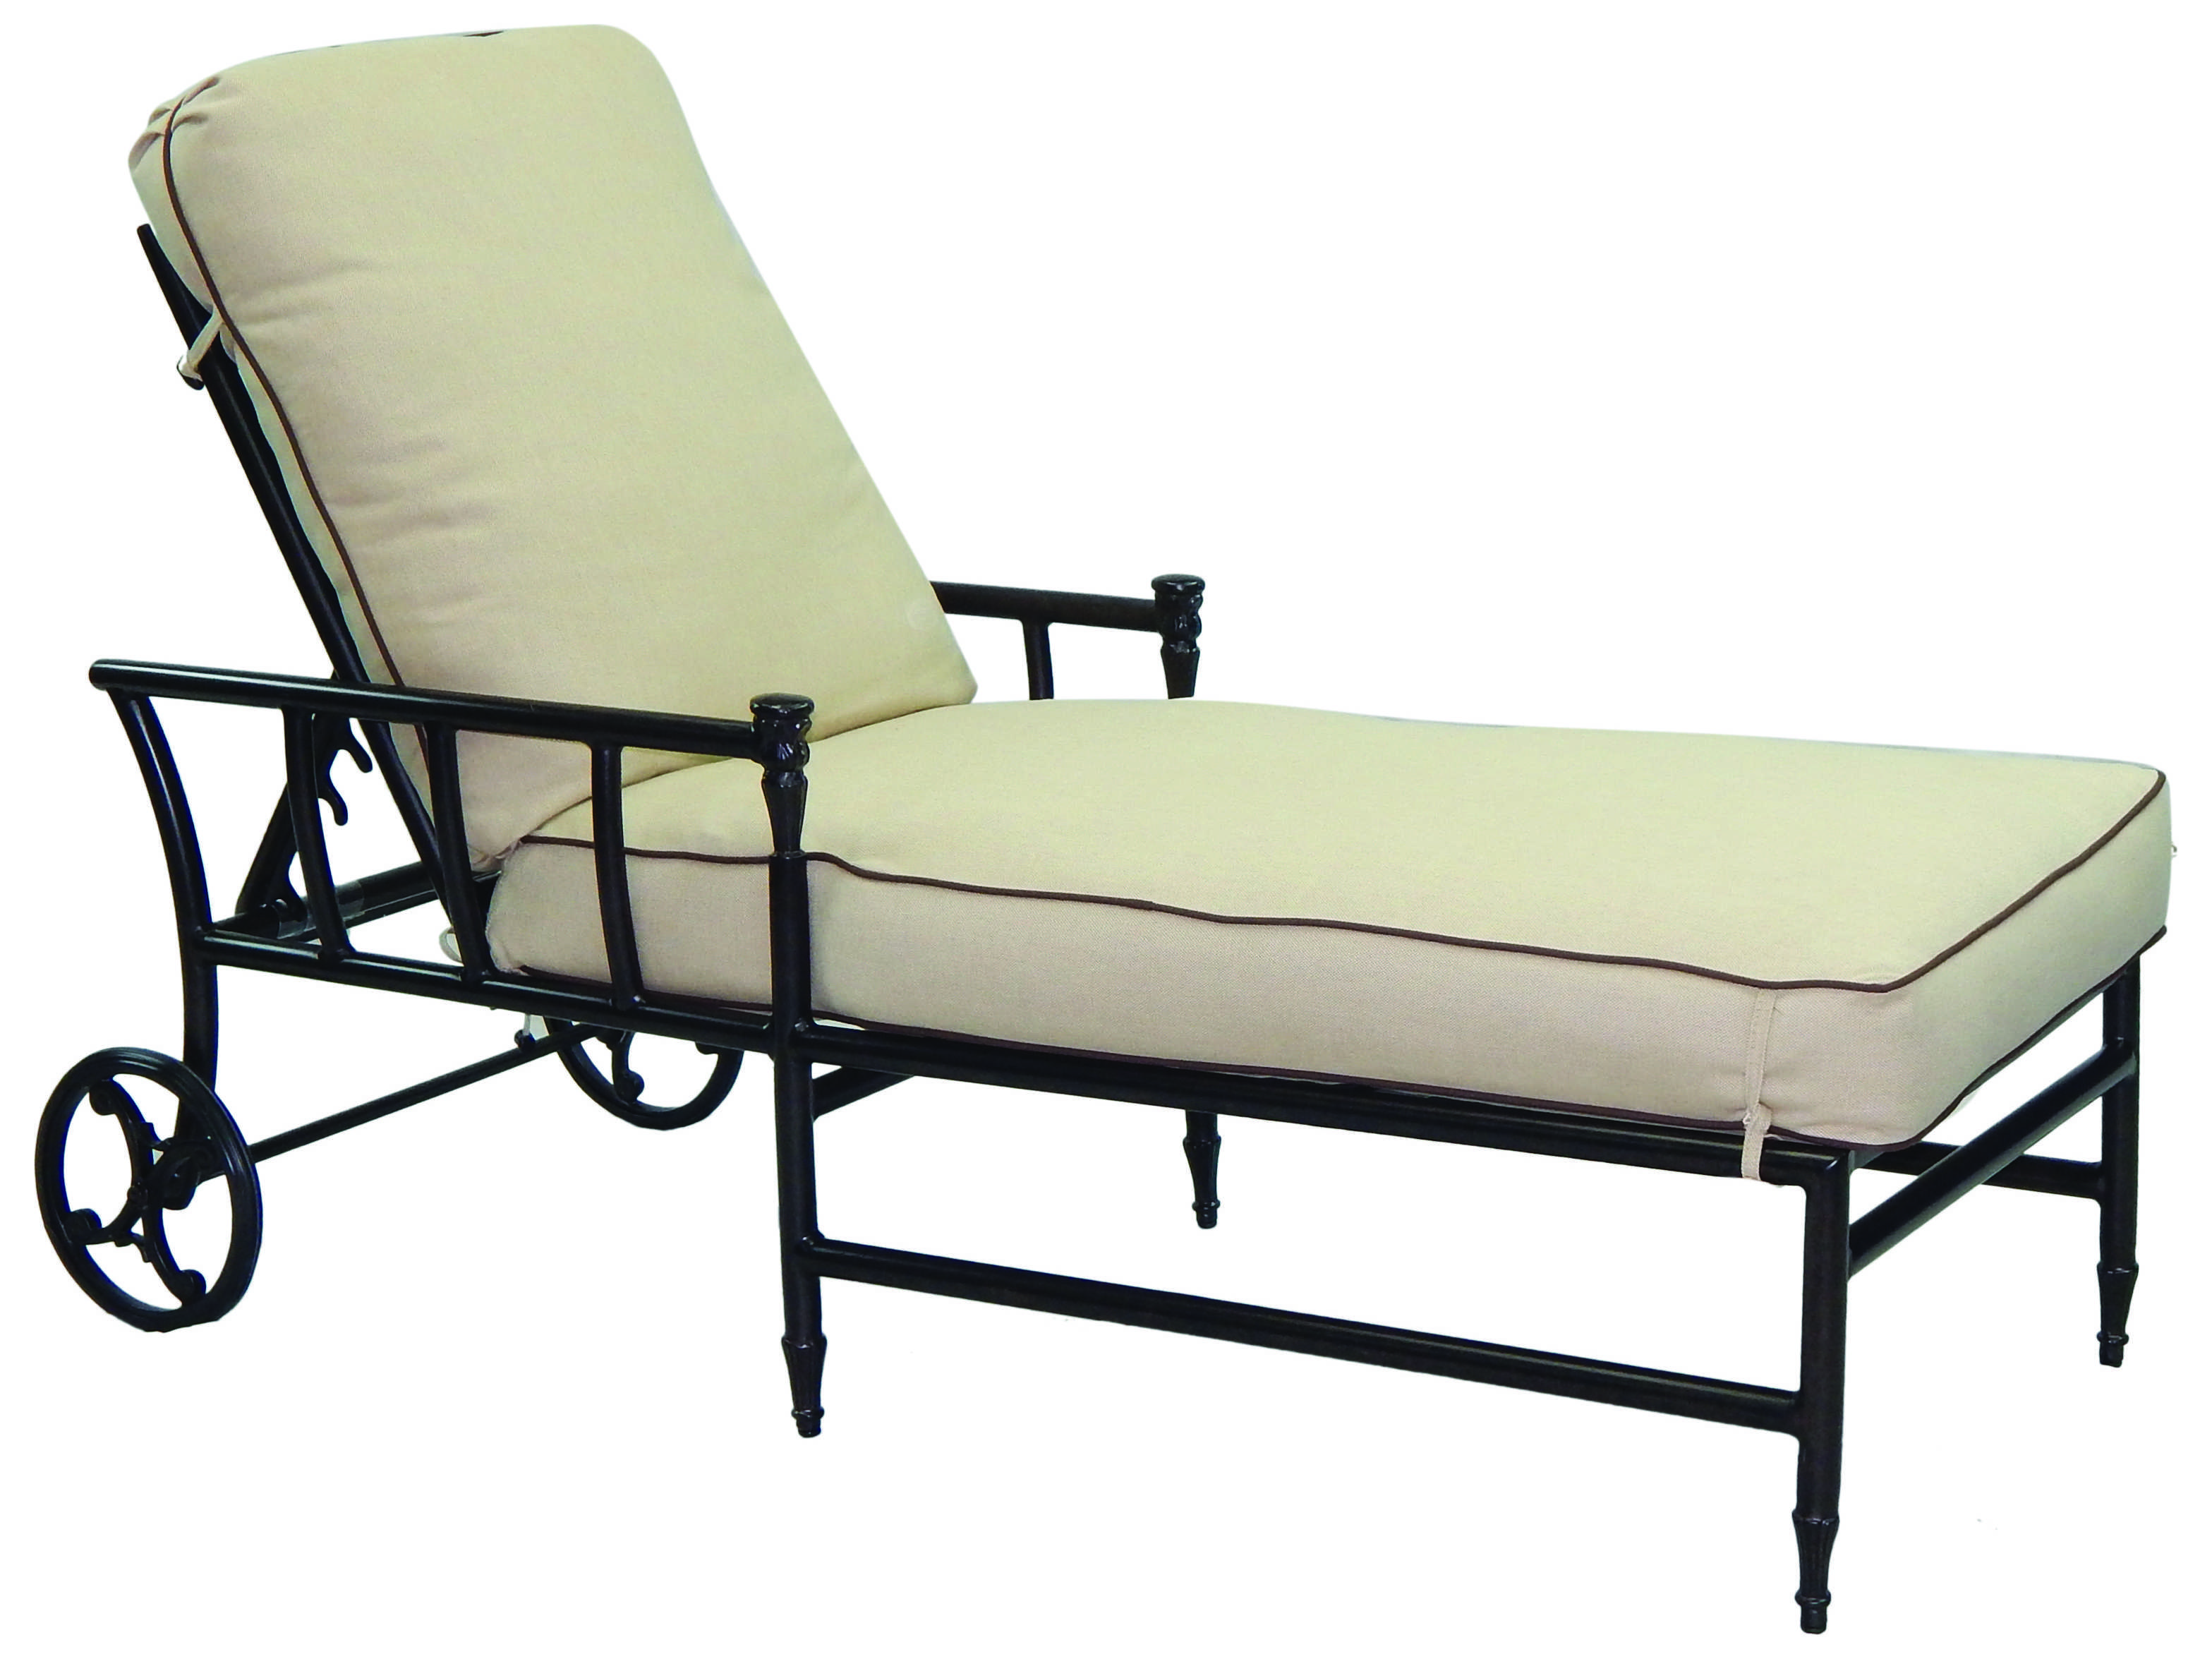 Castelle provence cushion cast aluminum adjustable chaise for Cast aluminum chaise lounge